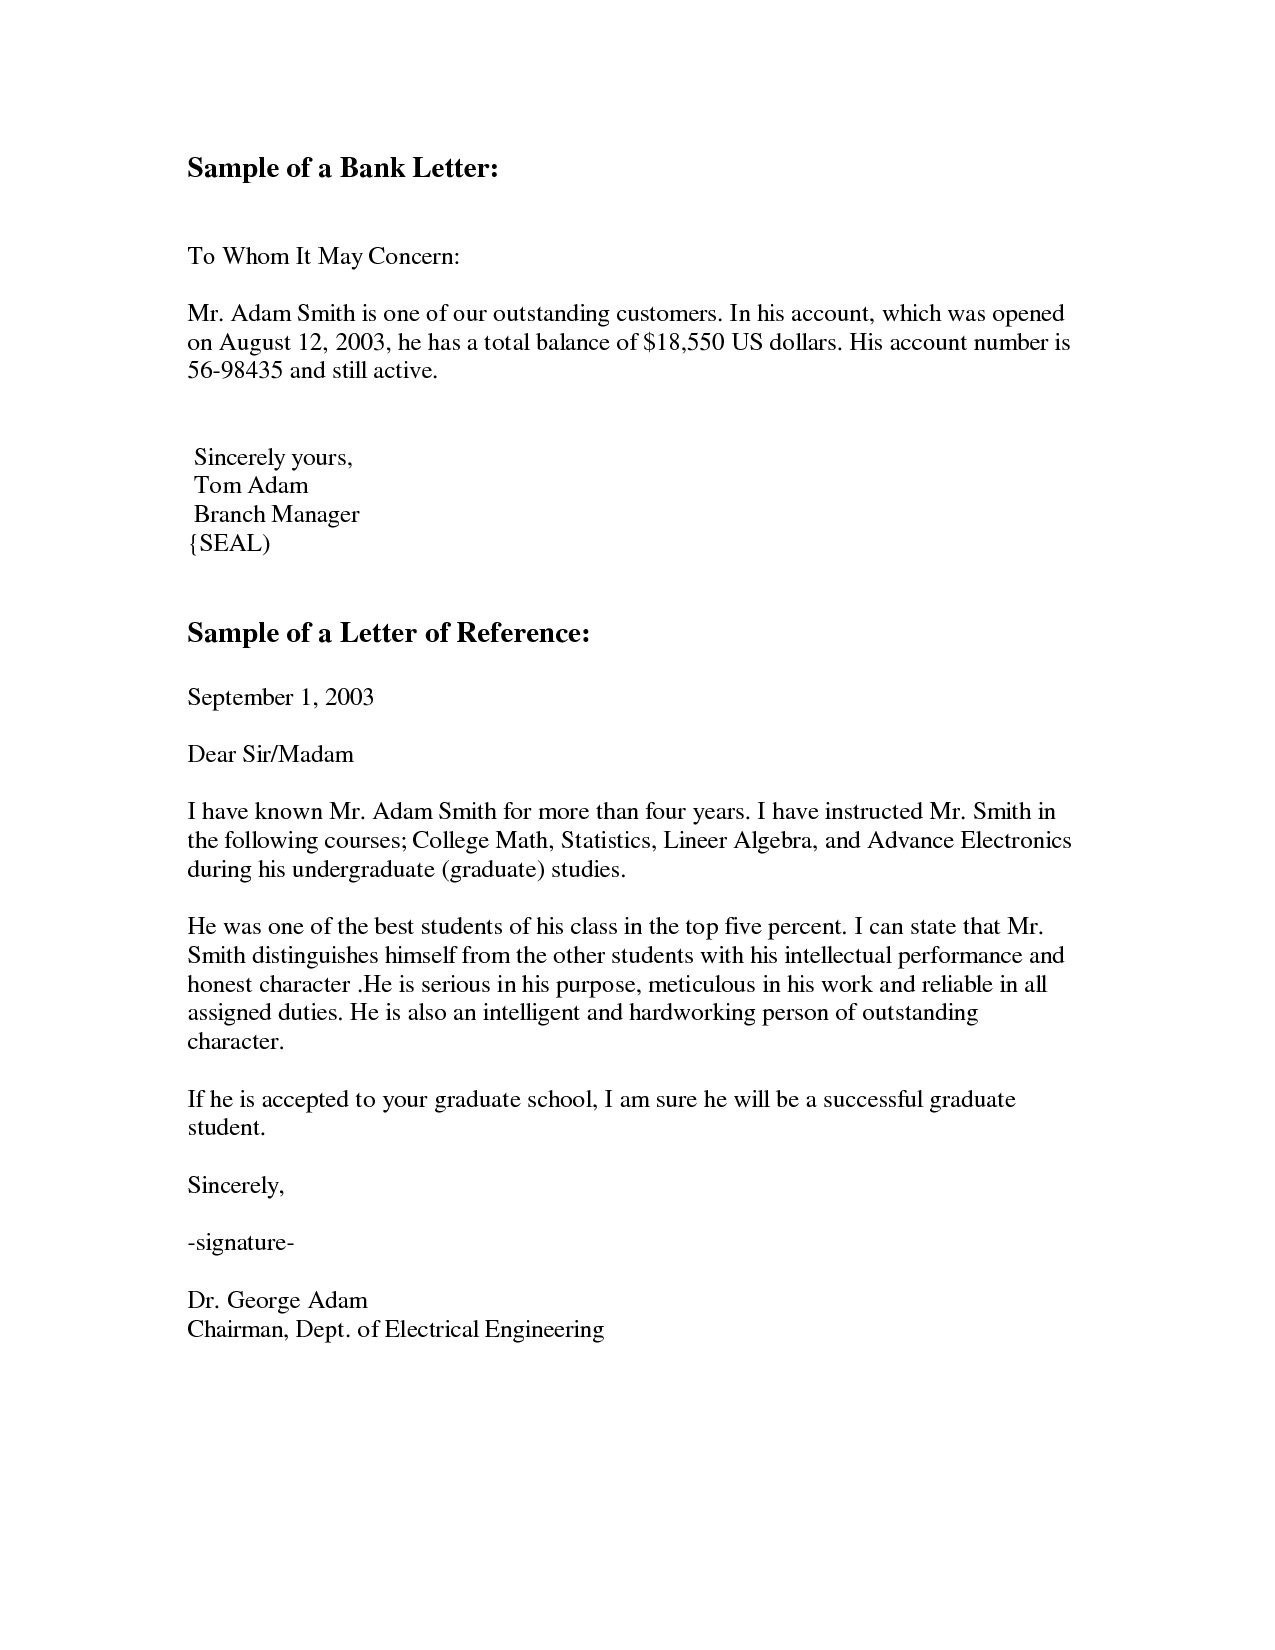 Professional Letter Template - Business bylaws Template Best formal Letter Template Unique bylaws